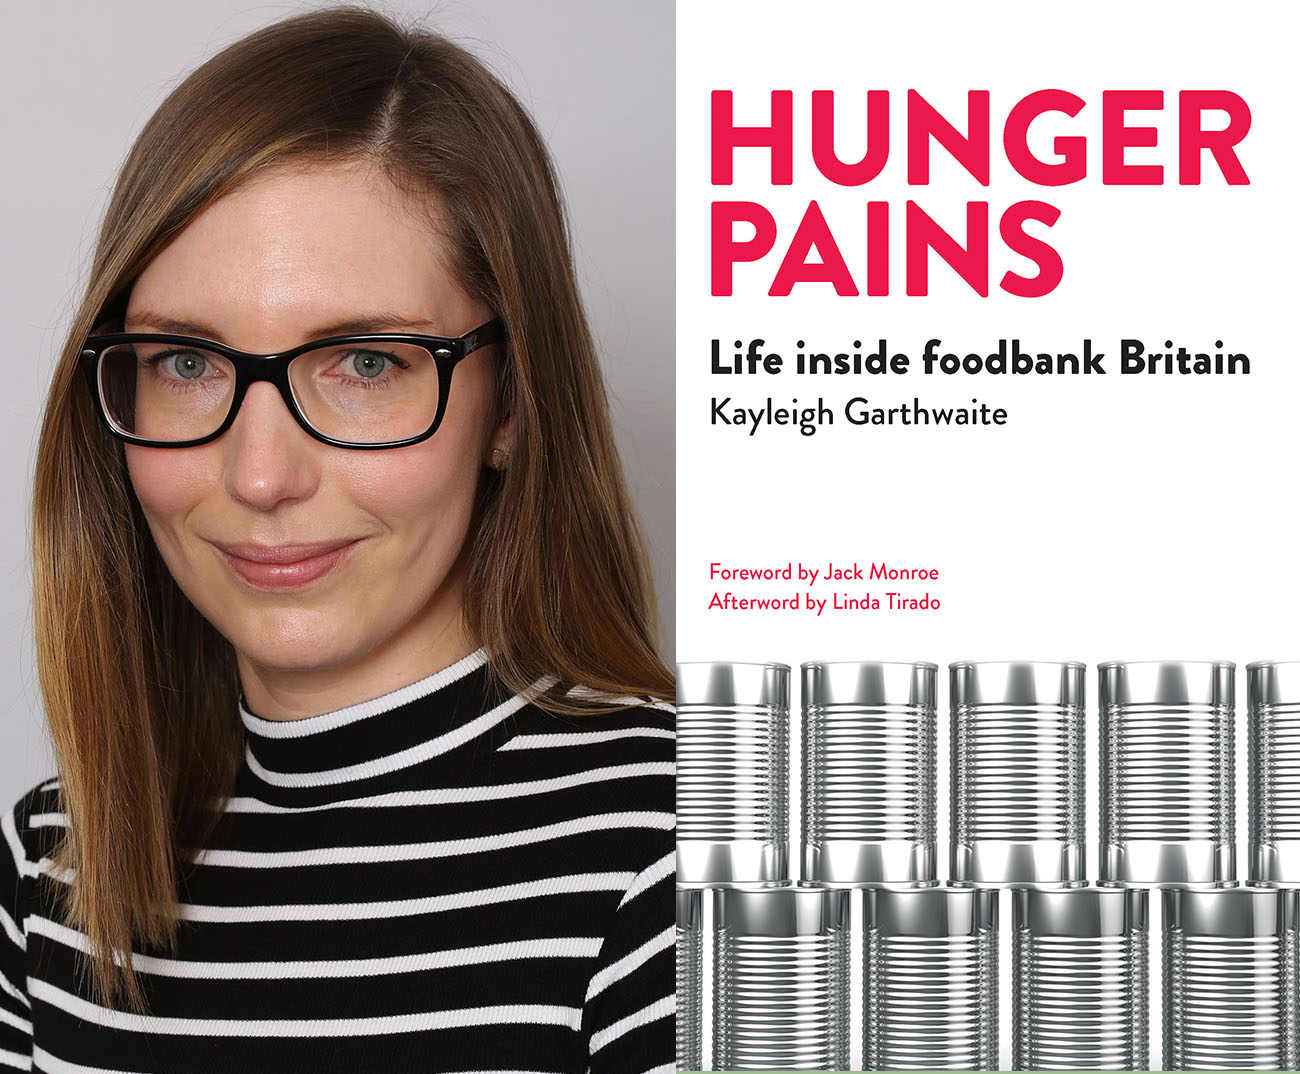 Sanctions and payment delays major cause of hunger: Kayleigh Garthwaite in the Guardian